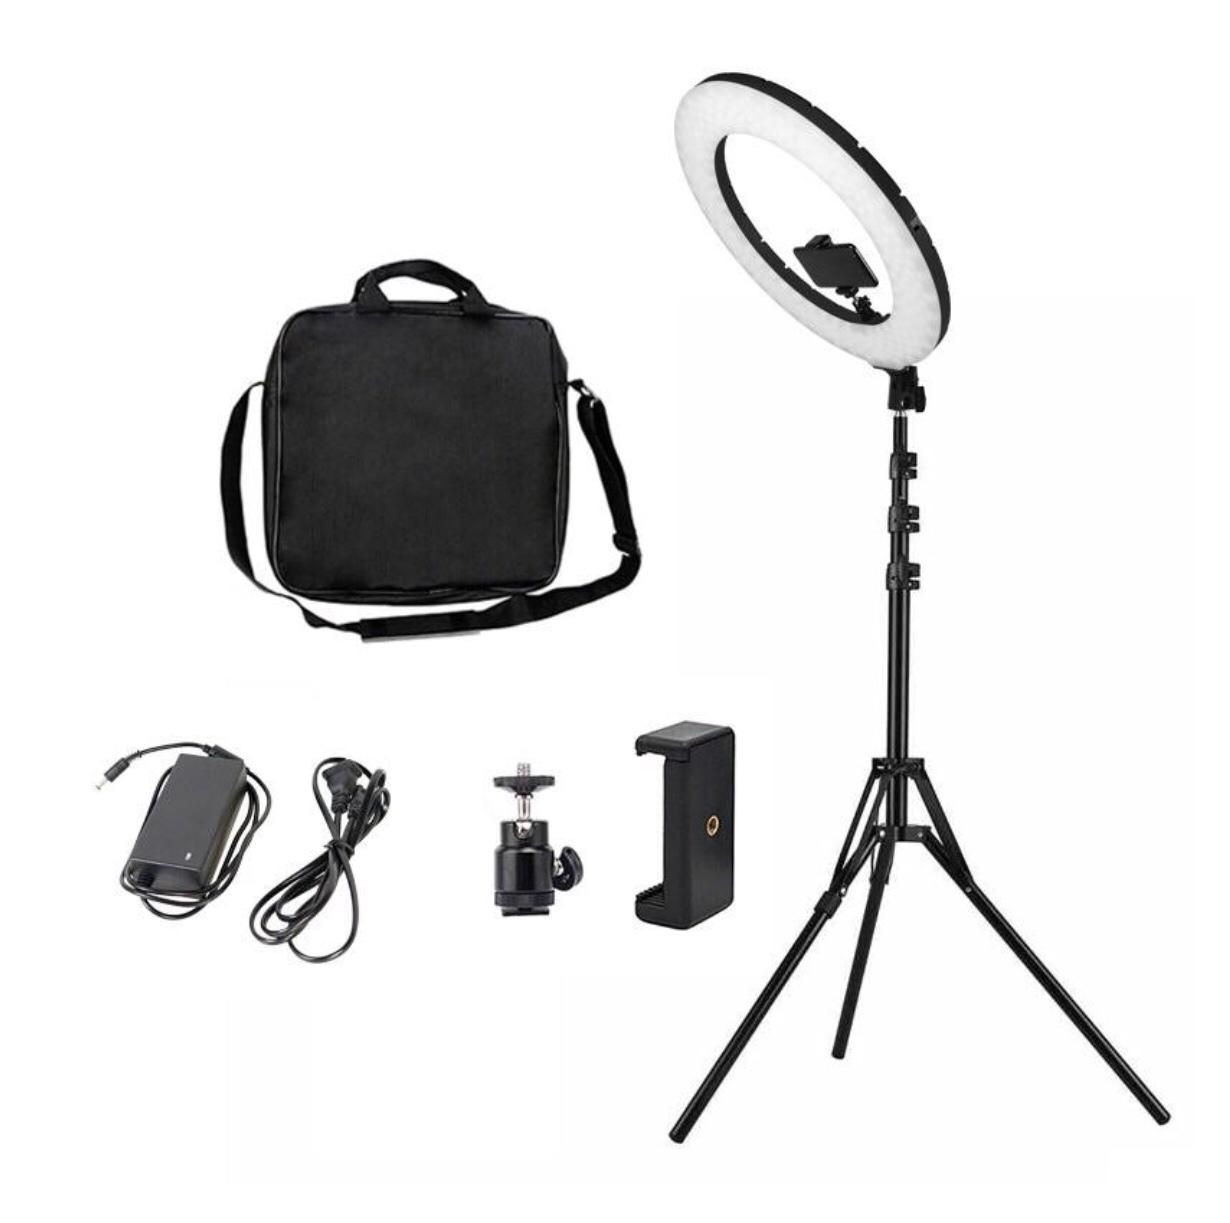 18 Inch LED Ring Light for Photography with Black and Pink Color LED Lamp